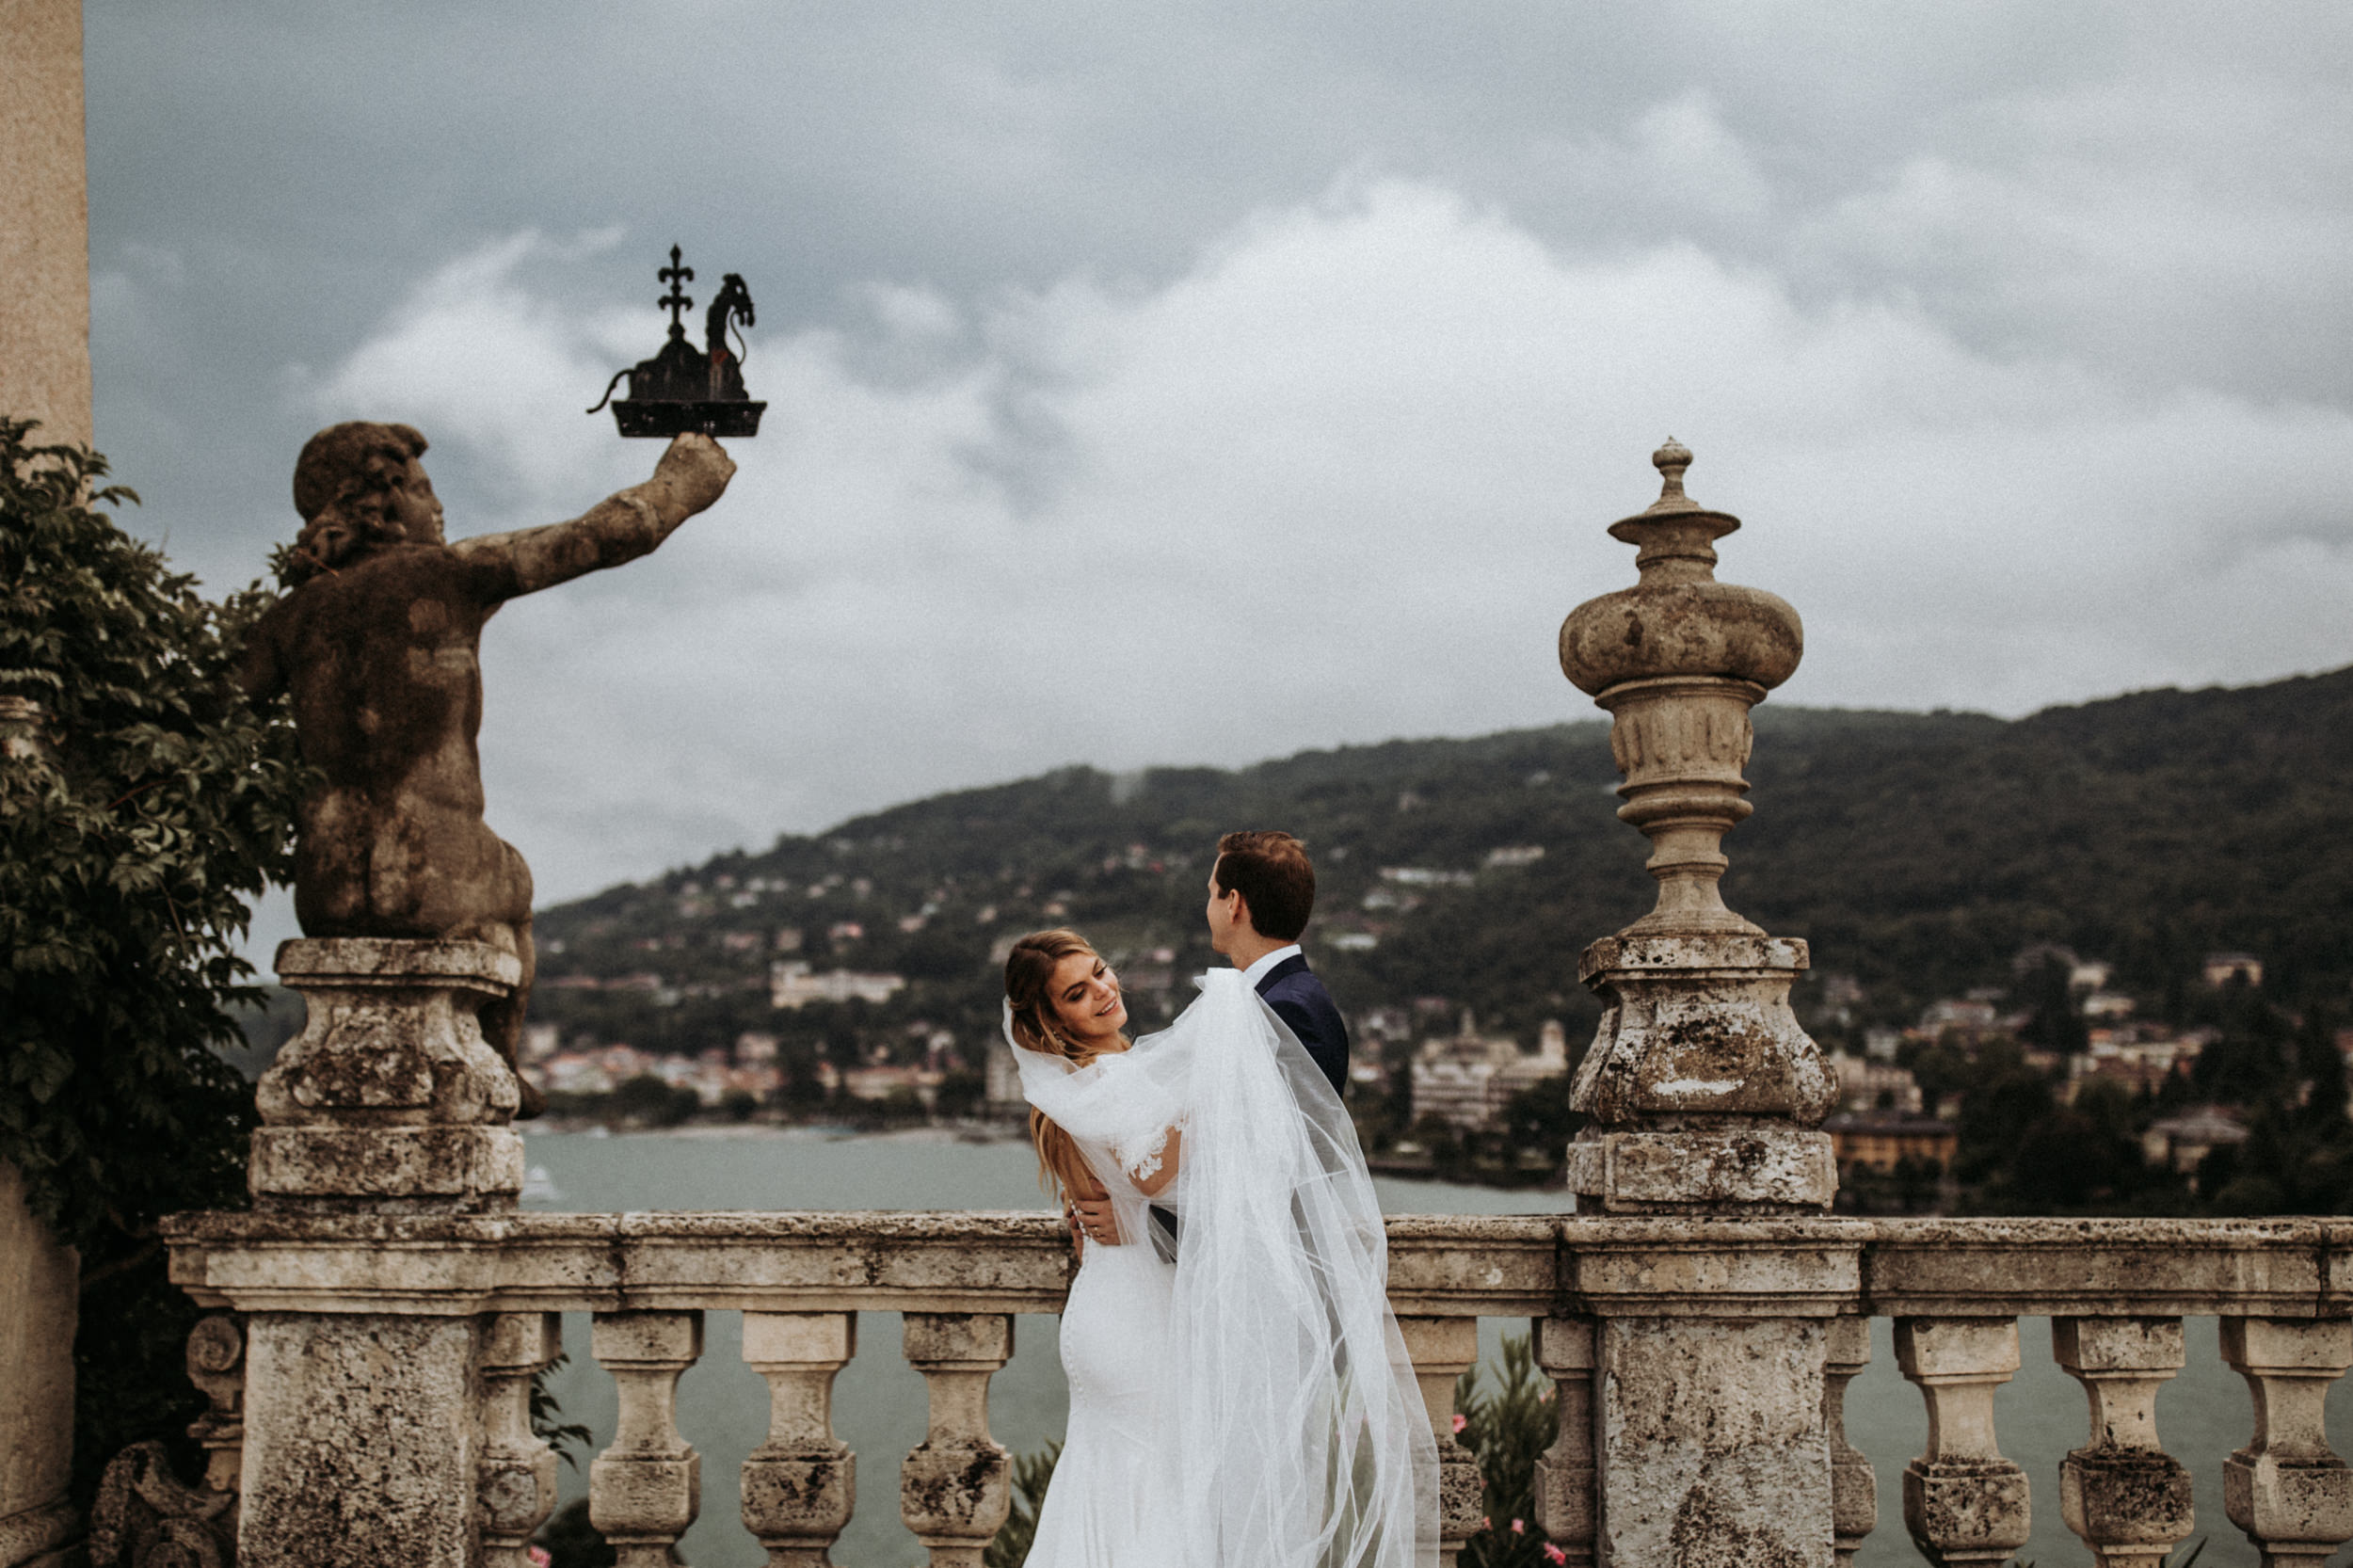 dm_photography_Lago Maggiore_Wed_216